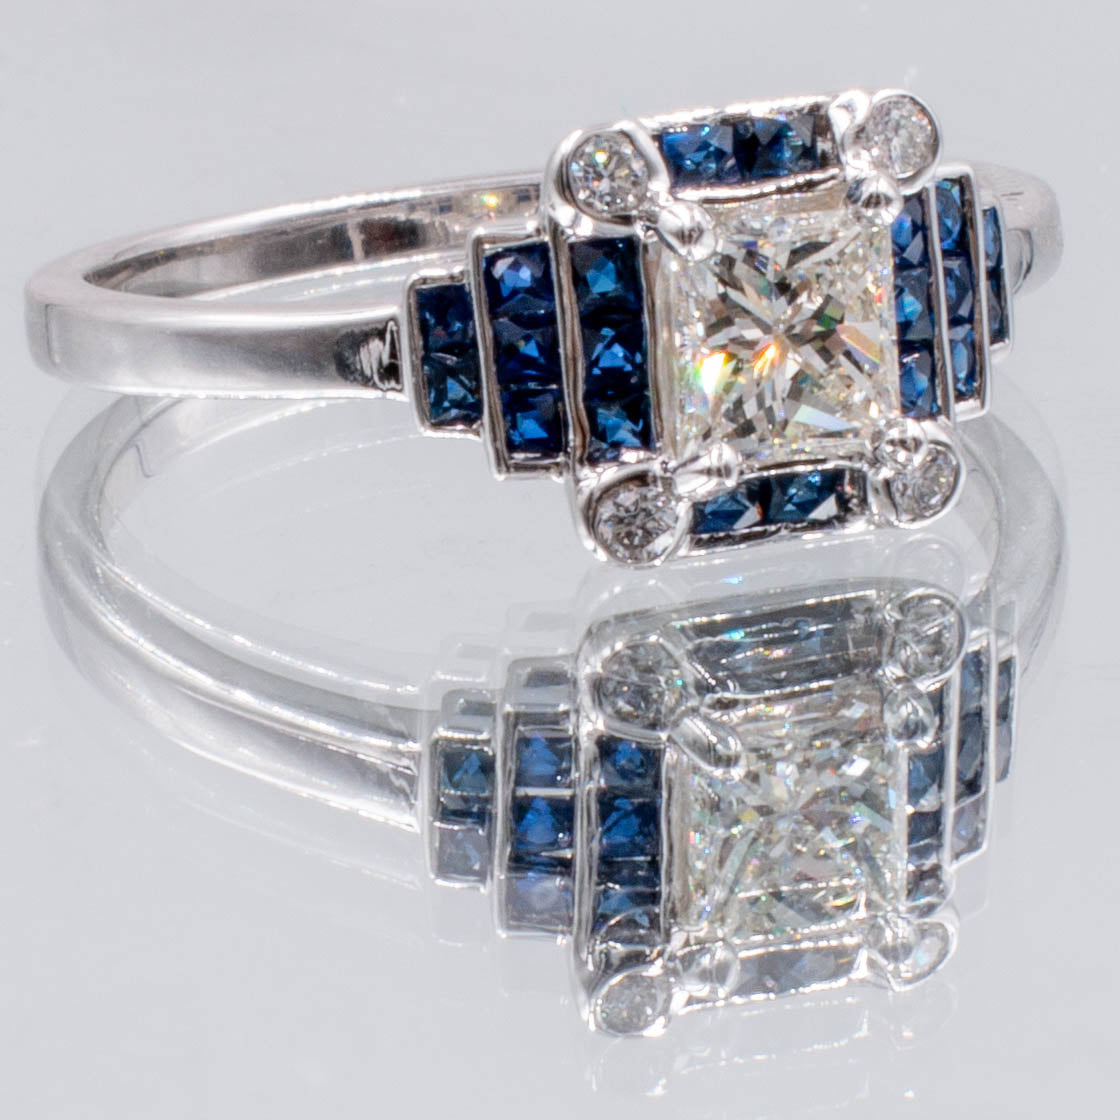 Art Deco Style .50 Carat Princess Cut Diamond Blue Sapphire Engagement Ring 14K White Gold